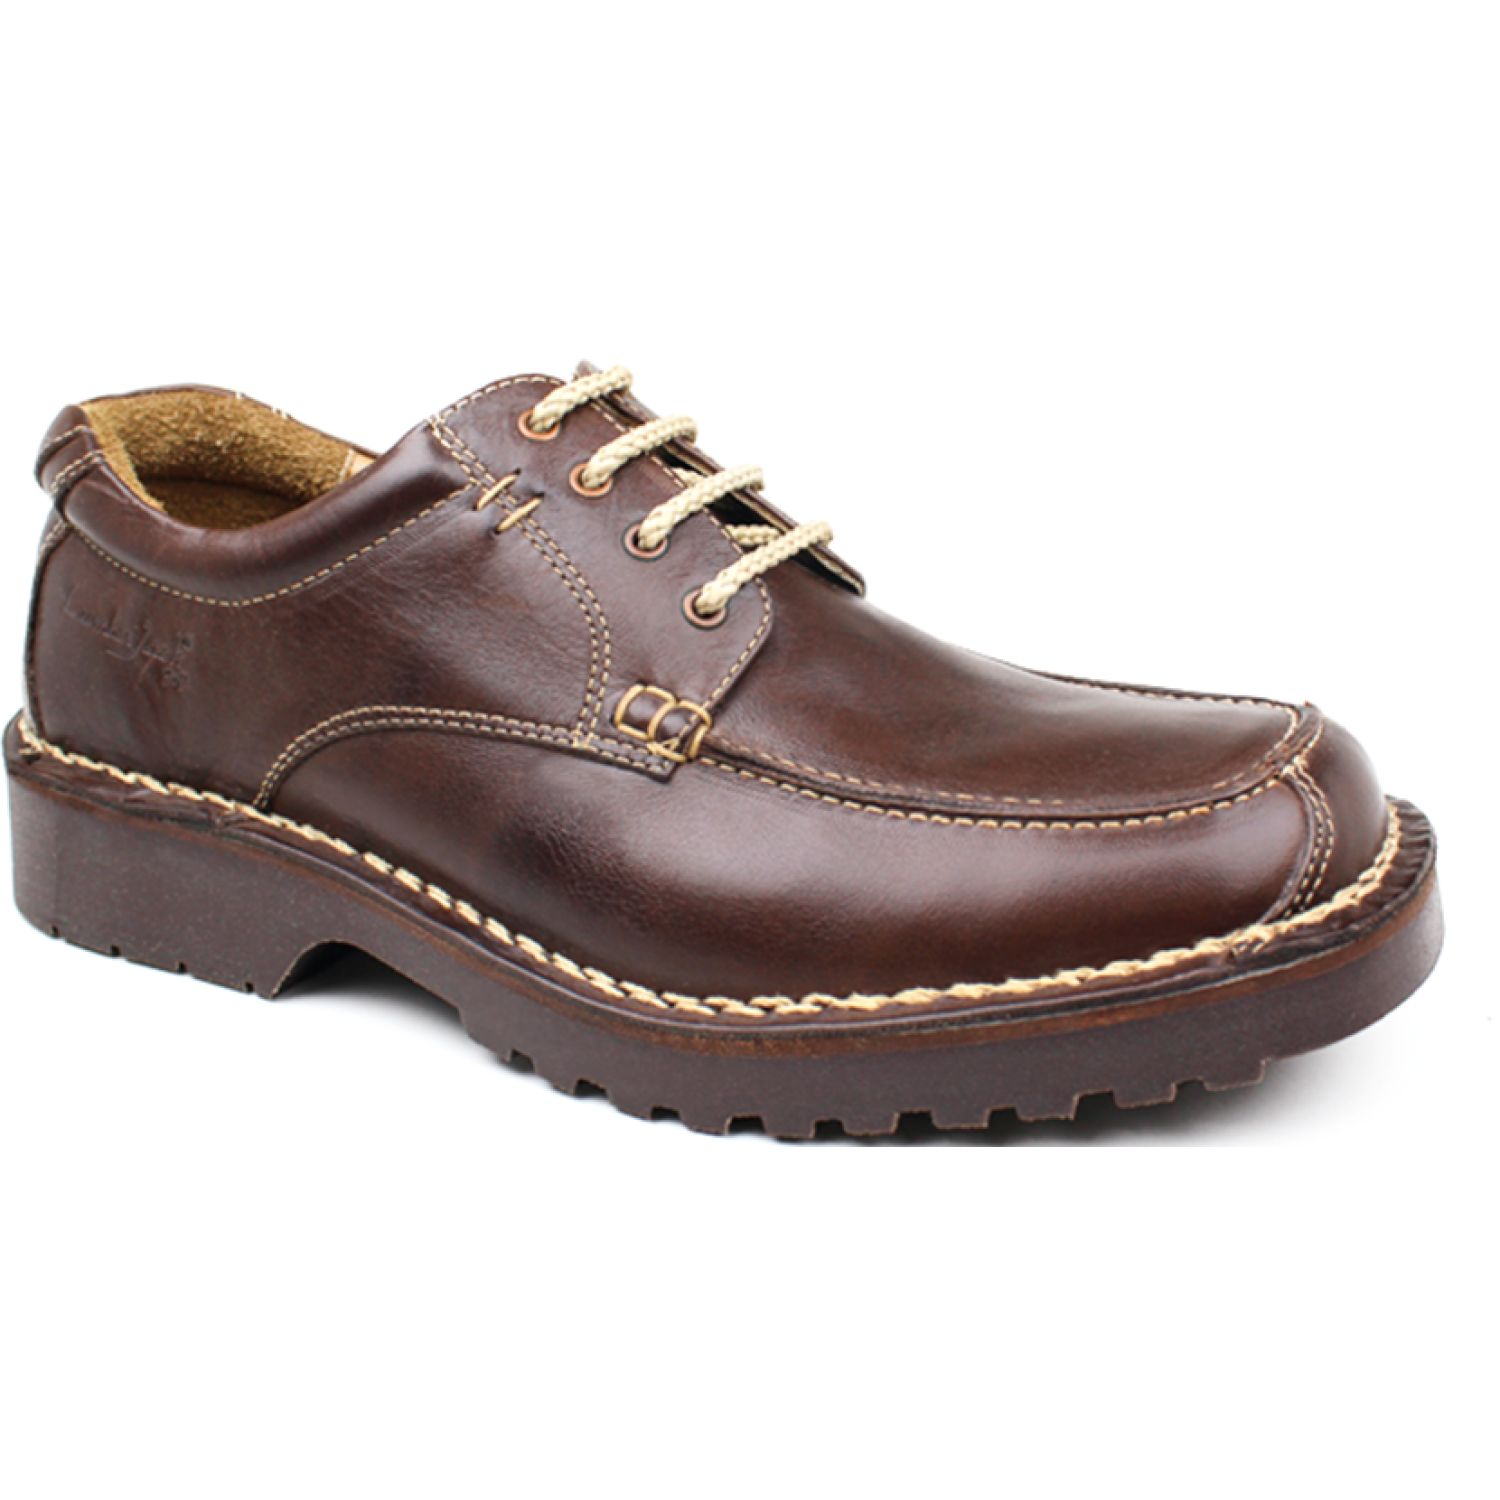 LumberJack 018244-L3 Marron Oxfords